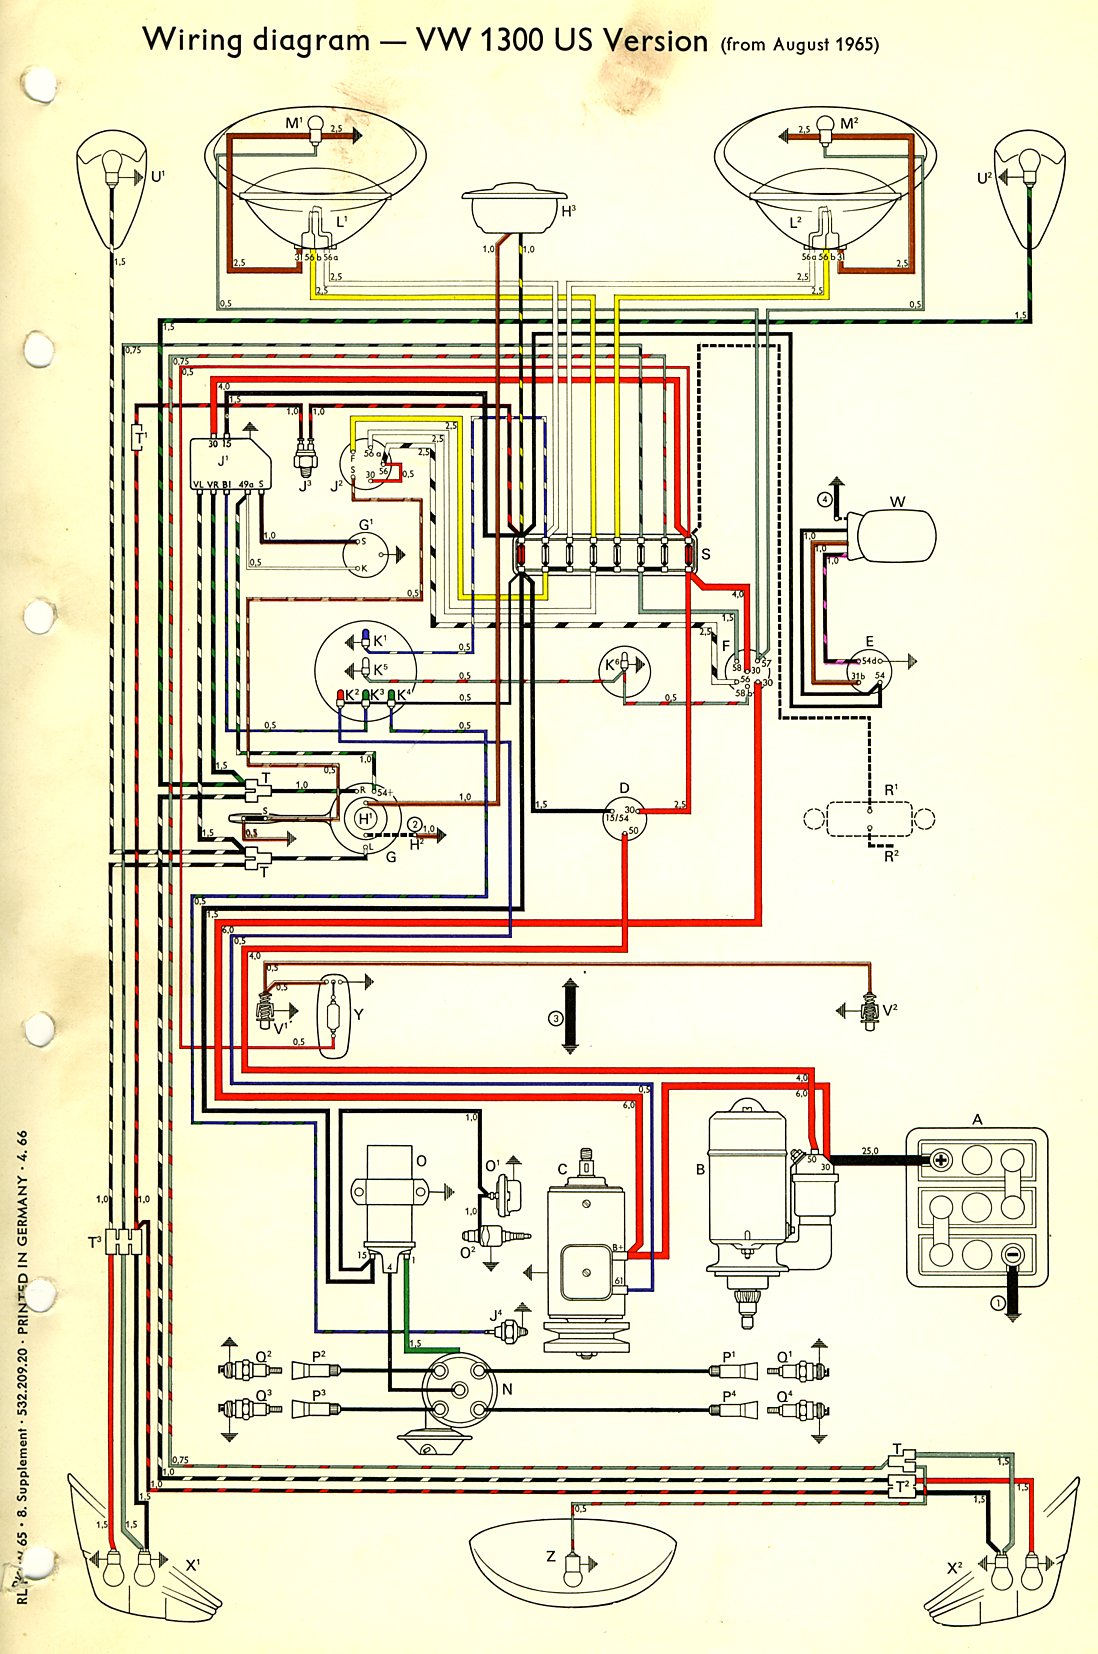 thesamba com type 1 wiring diagrams vw beetle air conditioner diagram vw beetle diagram #25